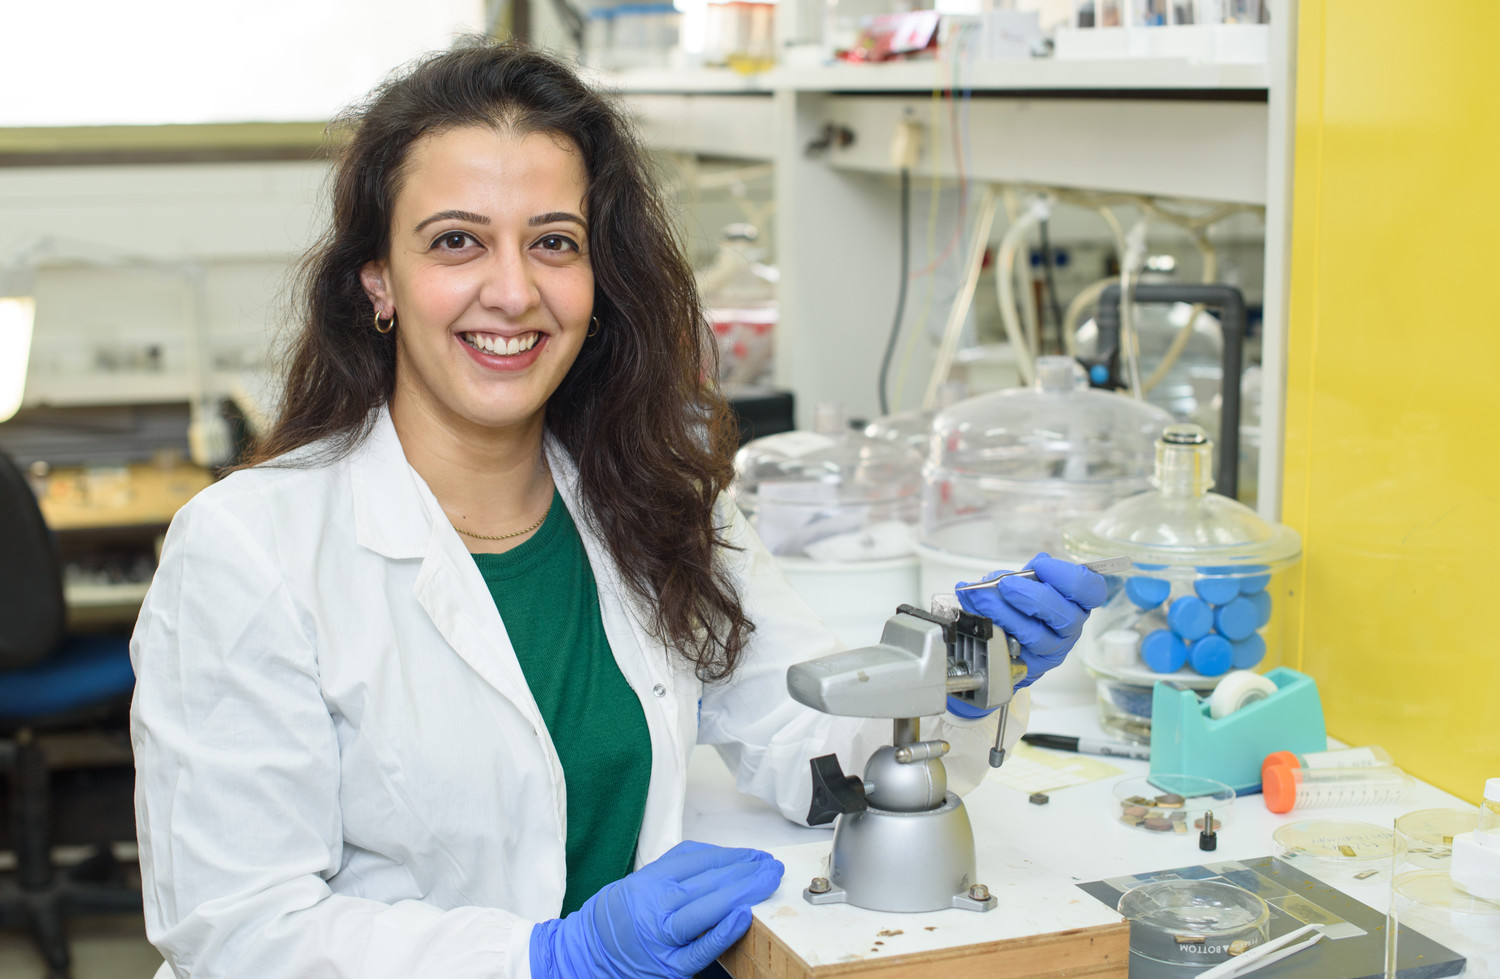 Elena Meirzadeh, pursuing a doctorate at the Weizmann Institute of Science, is studying the properties of crystals with an eye toward applications ranging from airplane wing deicing to improving cloud-seeding techniques to increase rainfall.